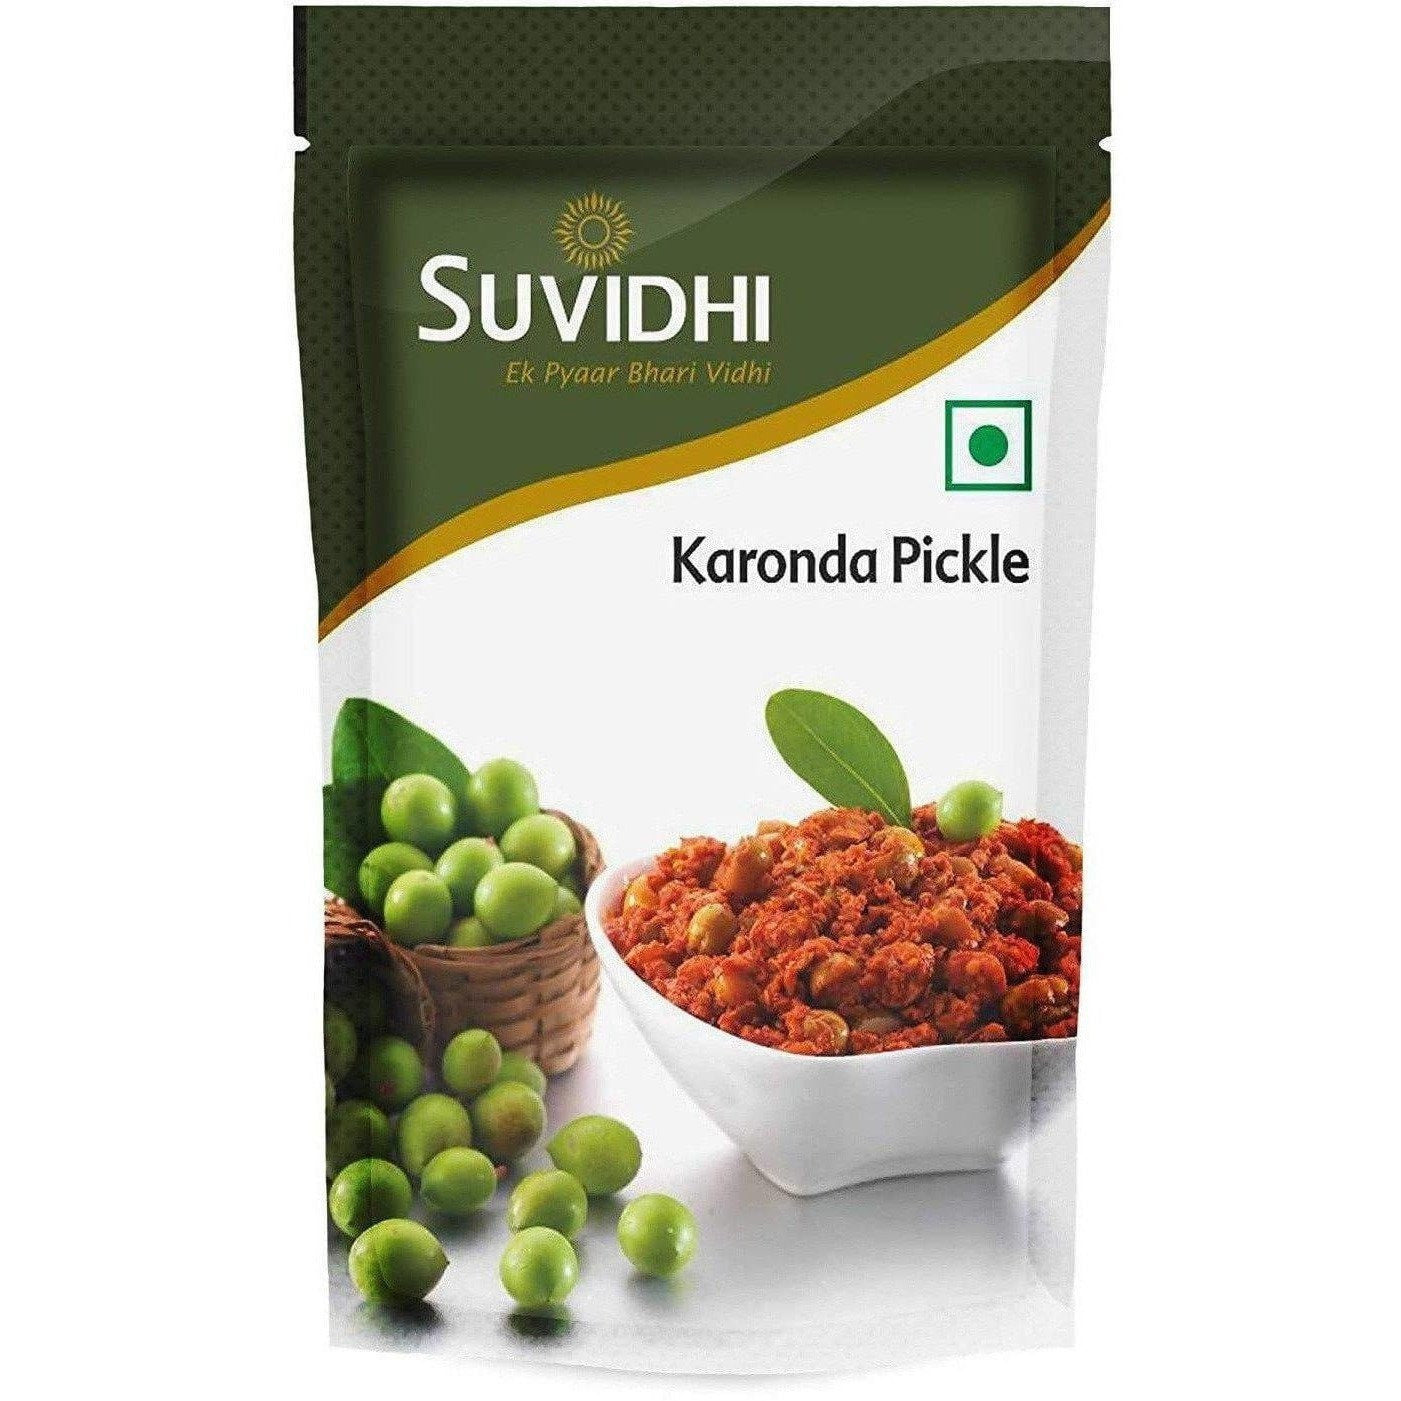 Suvidhi Karonda Pickle